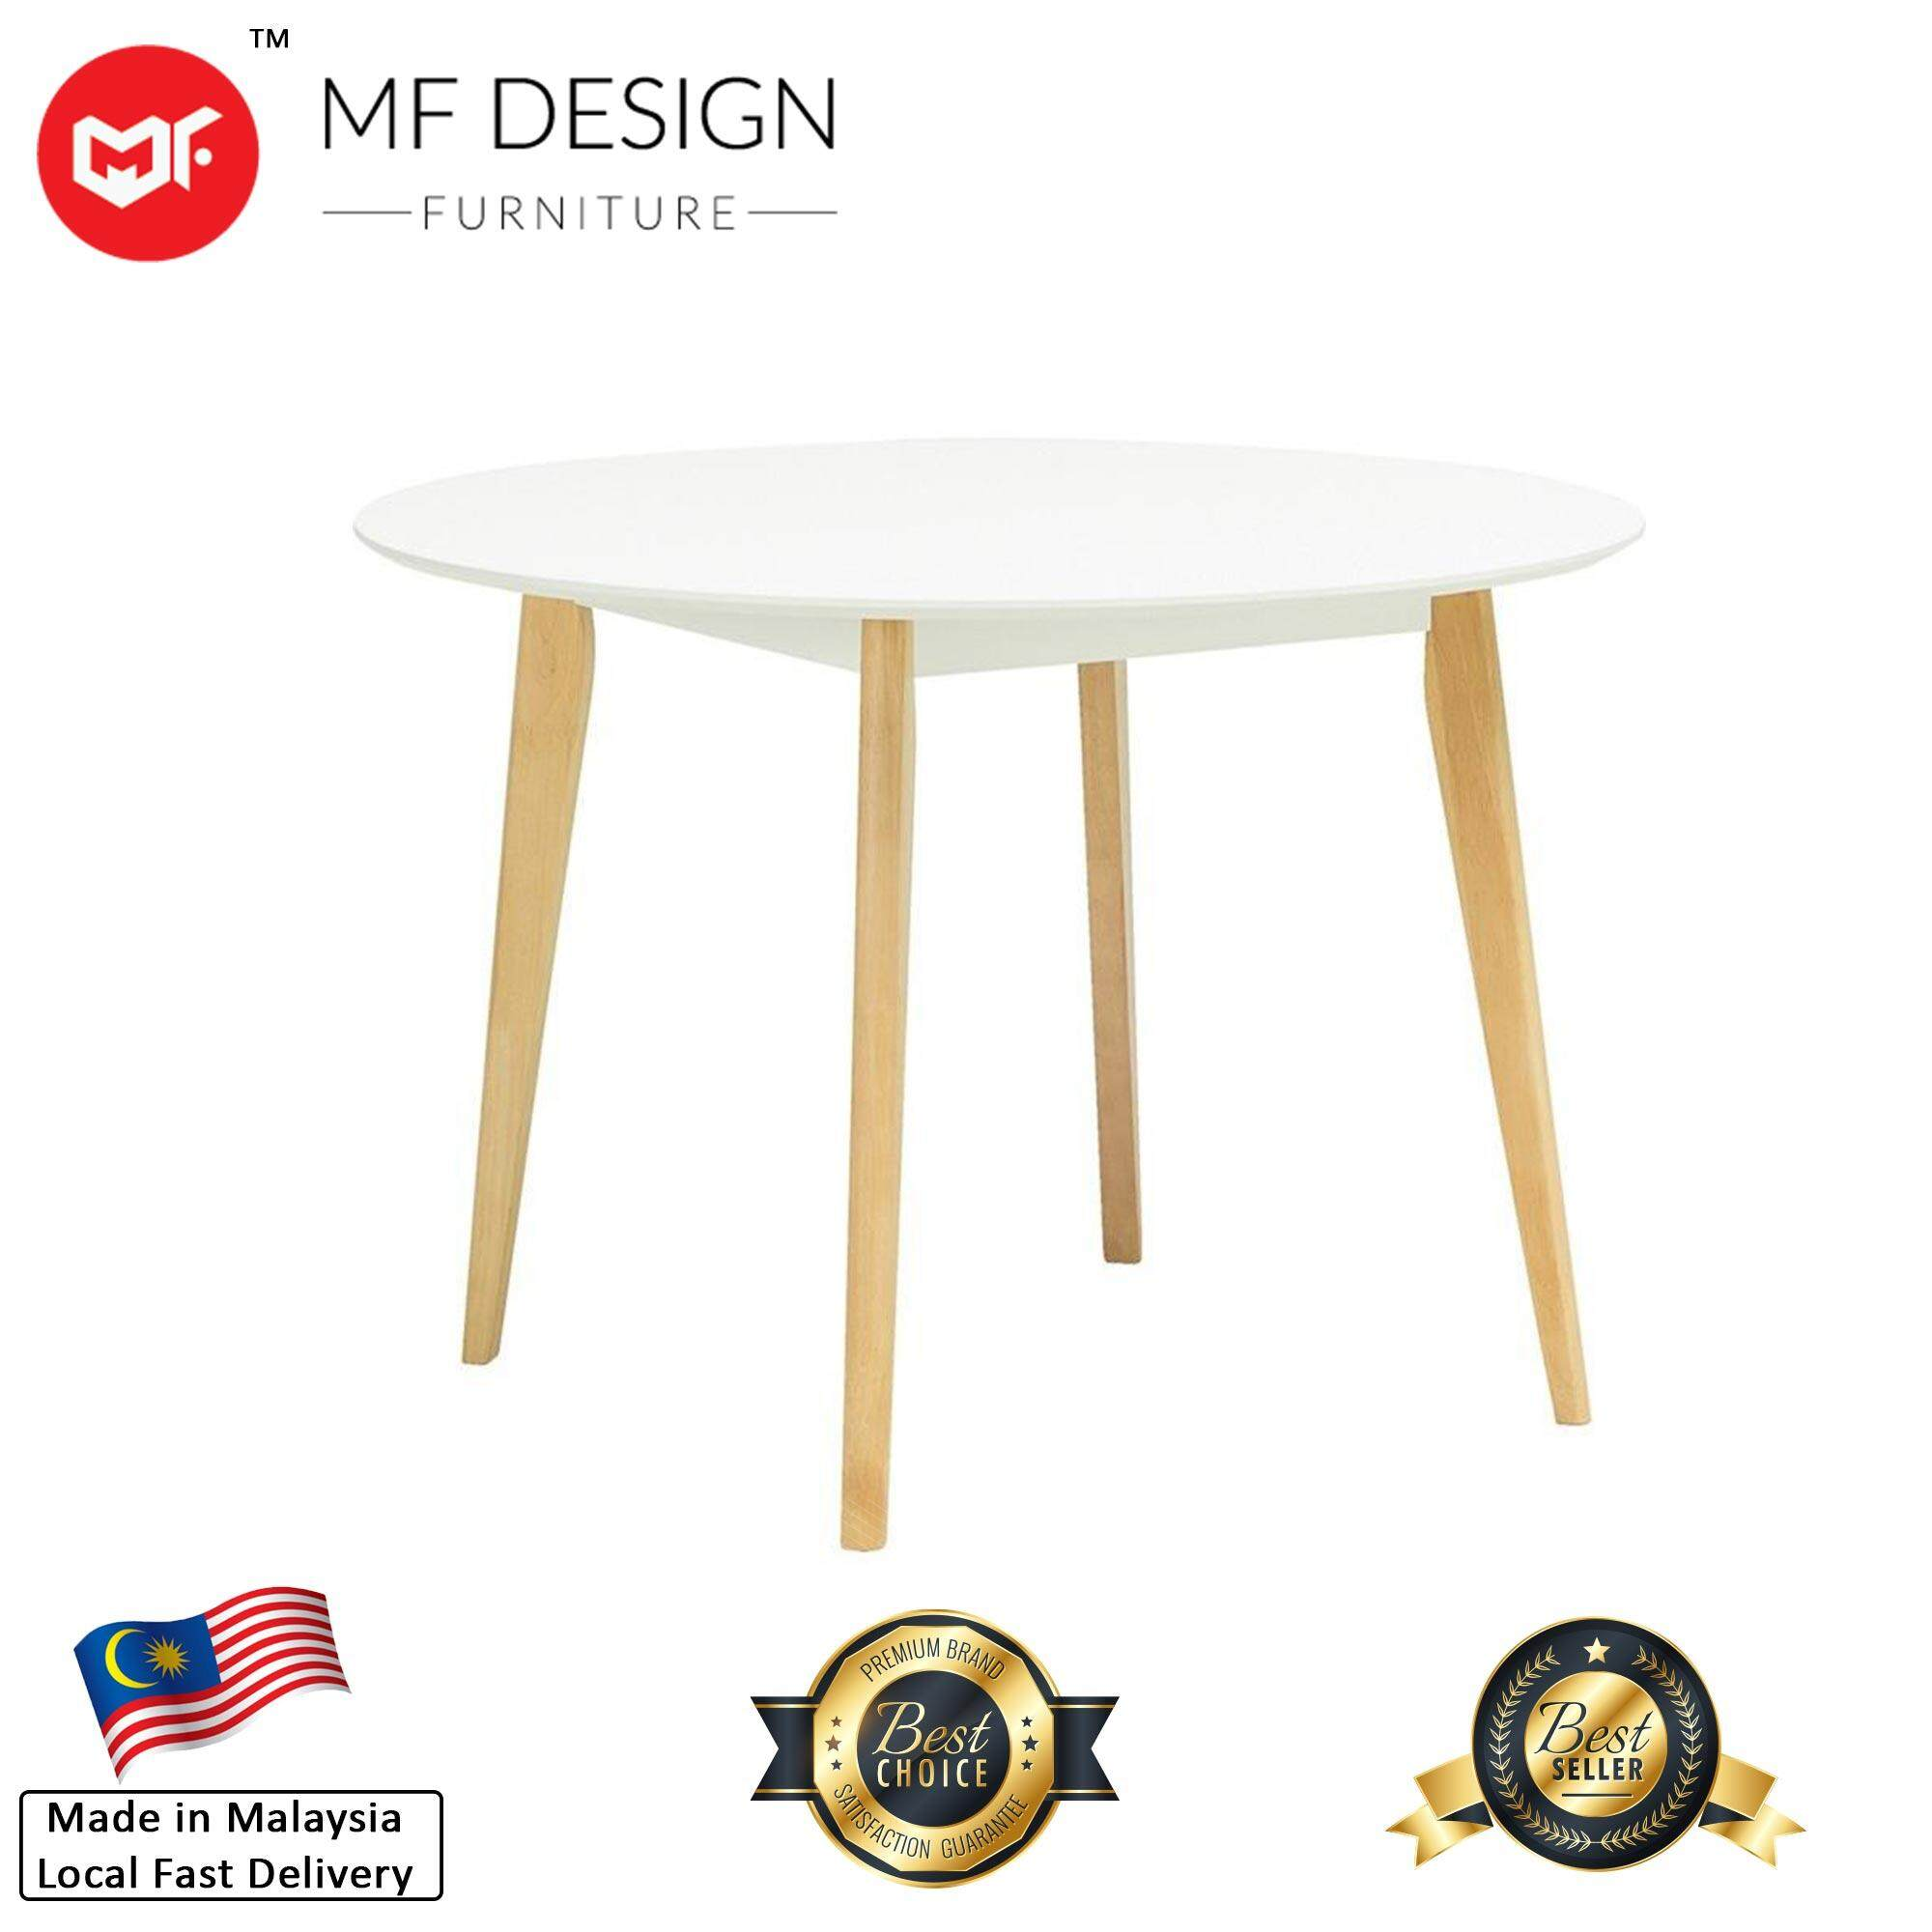 Mf Design mf design products for the best prices in malaysia